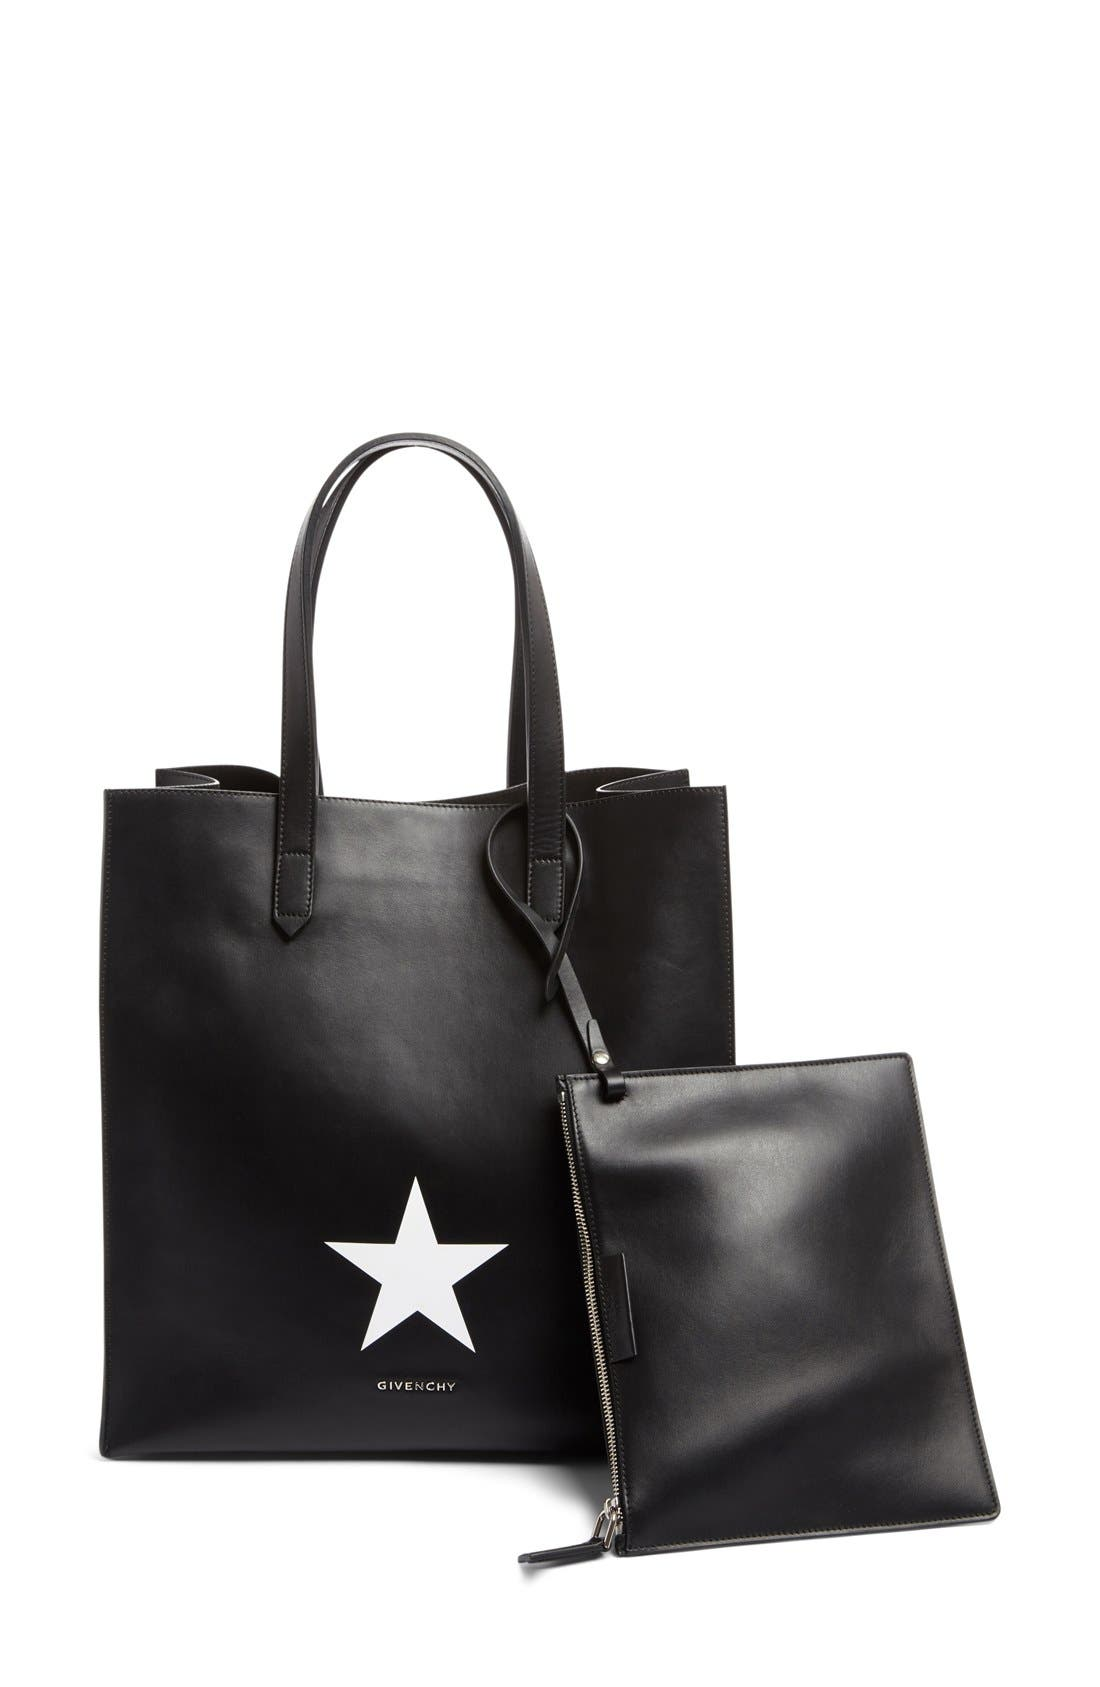 Givenchy Medium Stargate Star Leather Tote